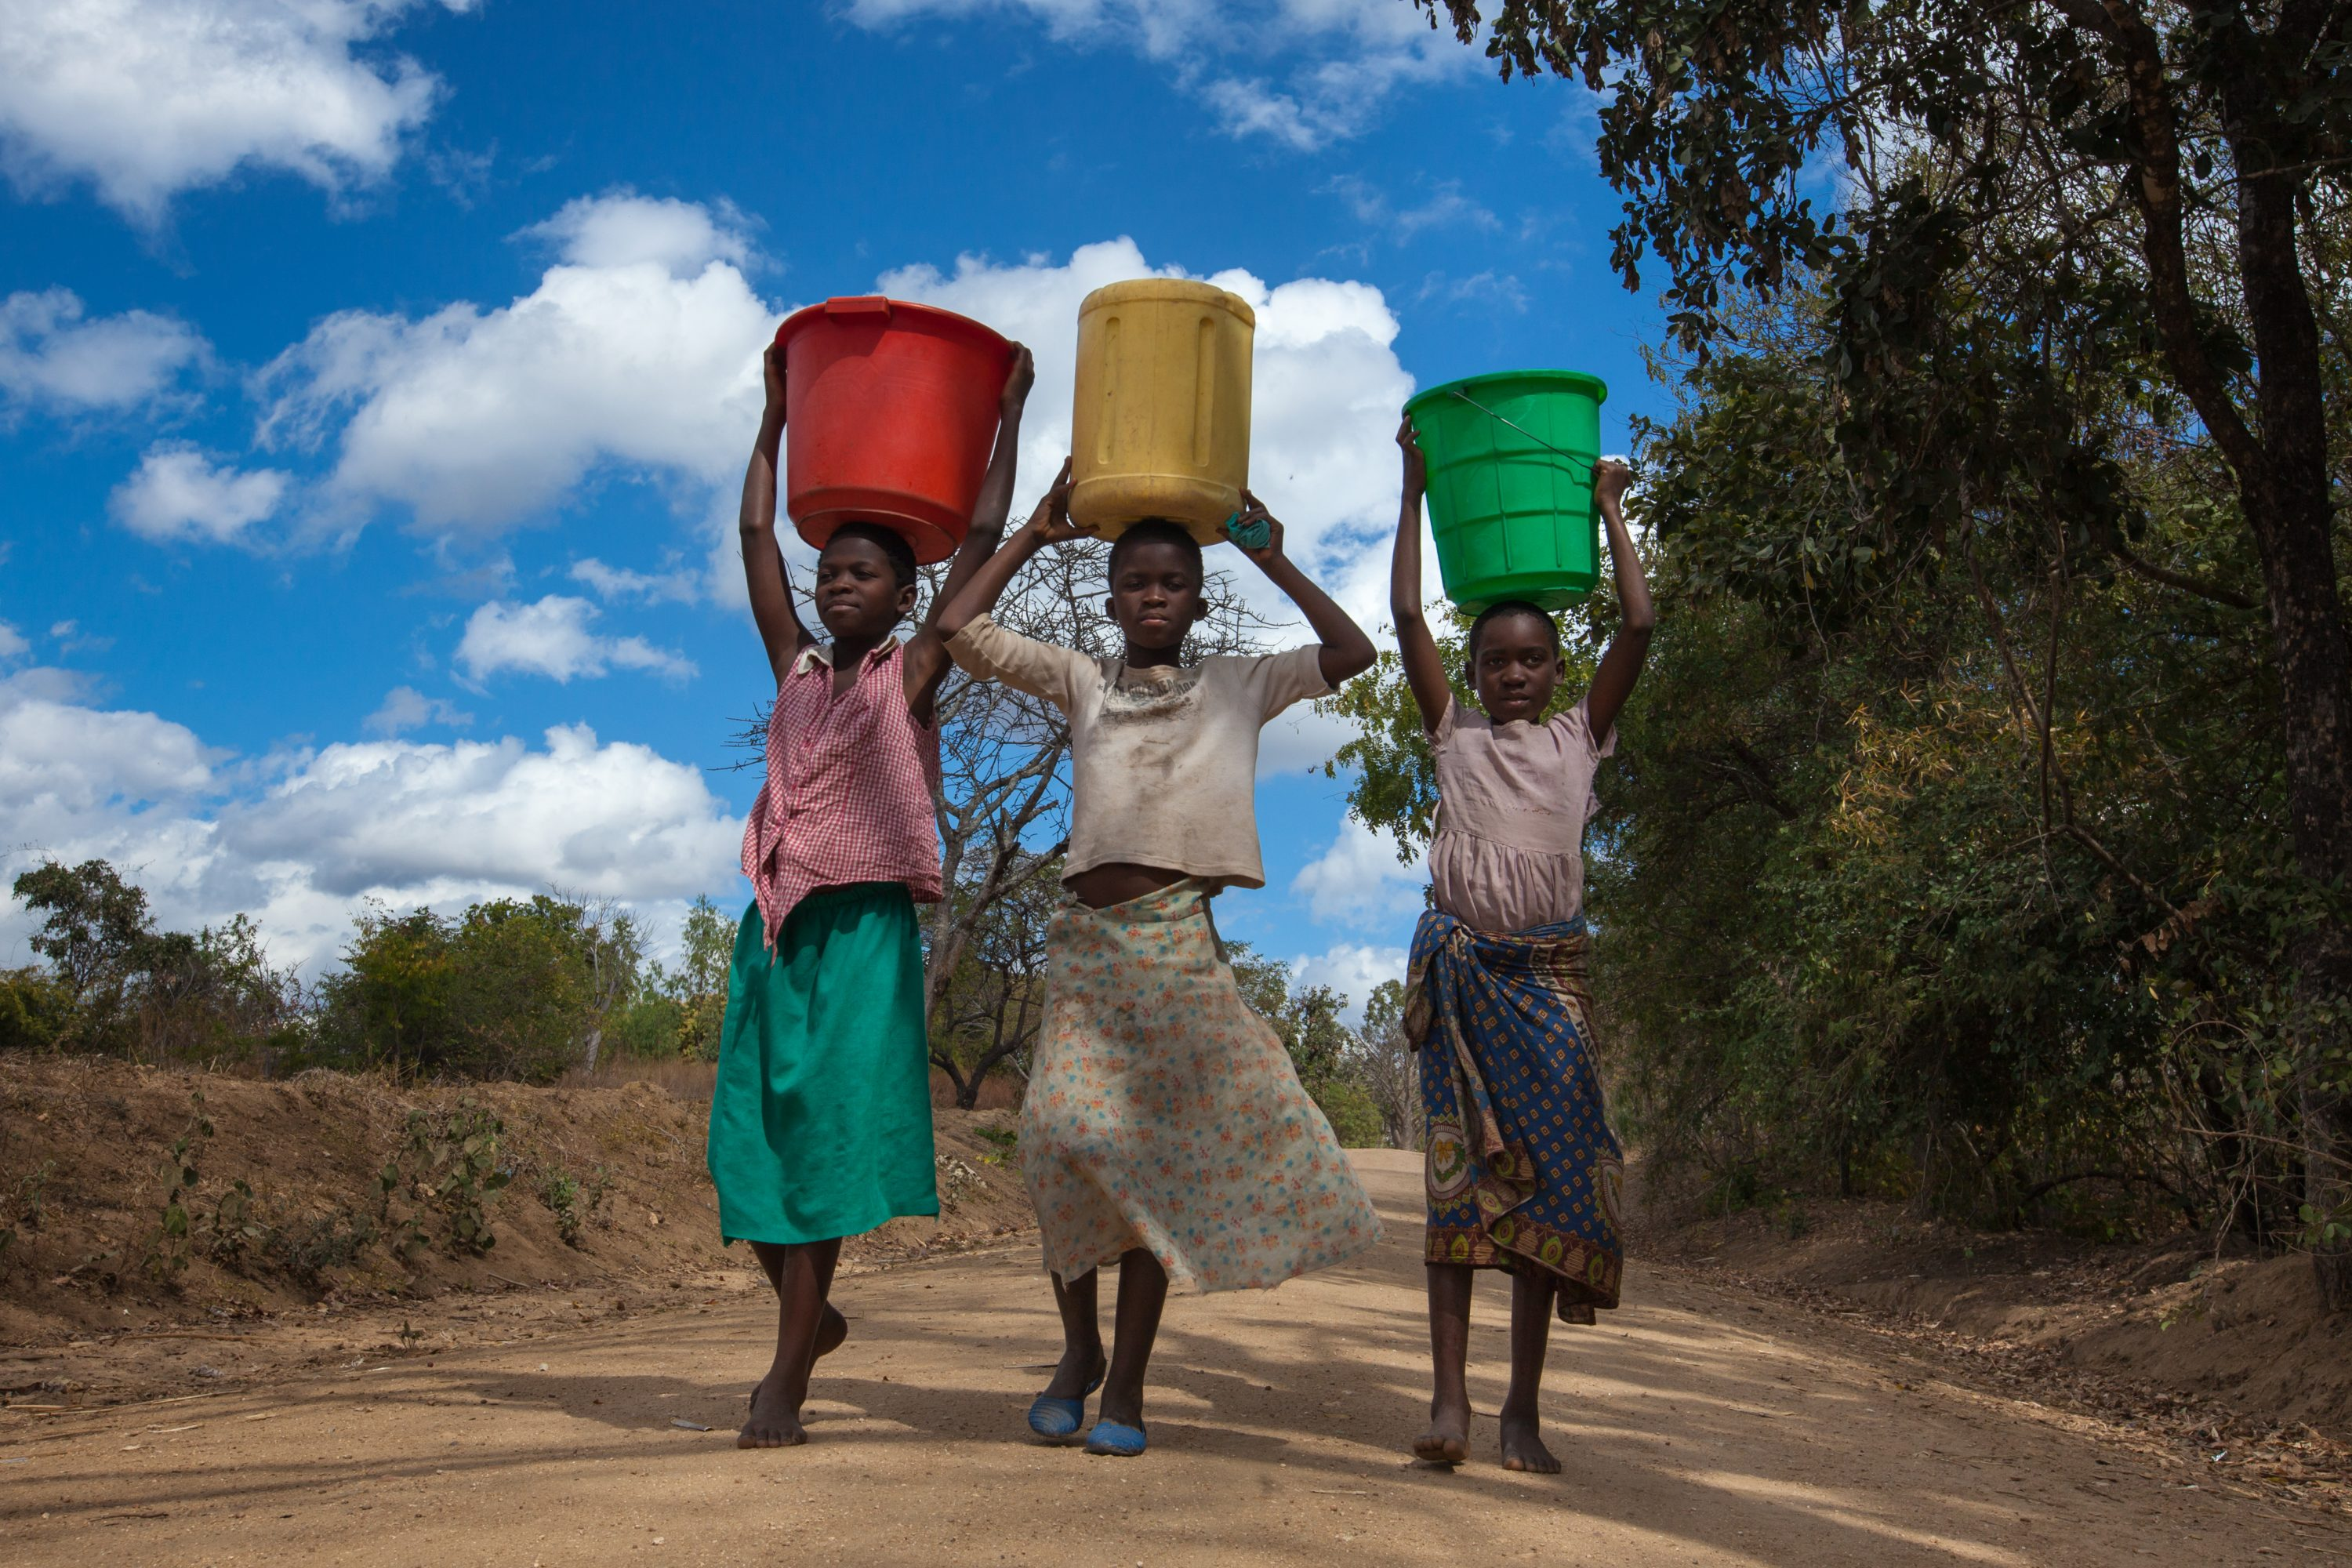 Three Teenage Girls Carrying Colorful Buckets Of Water On A Dirt Road, Returning From Their Journey To The Nearest Borehole, In Balaka District, Southern Malawi, Under A Blue Sky With Clouds.